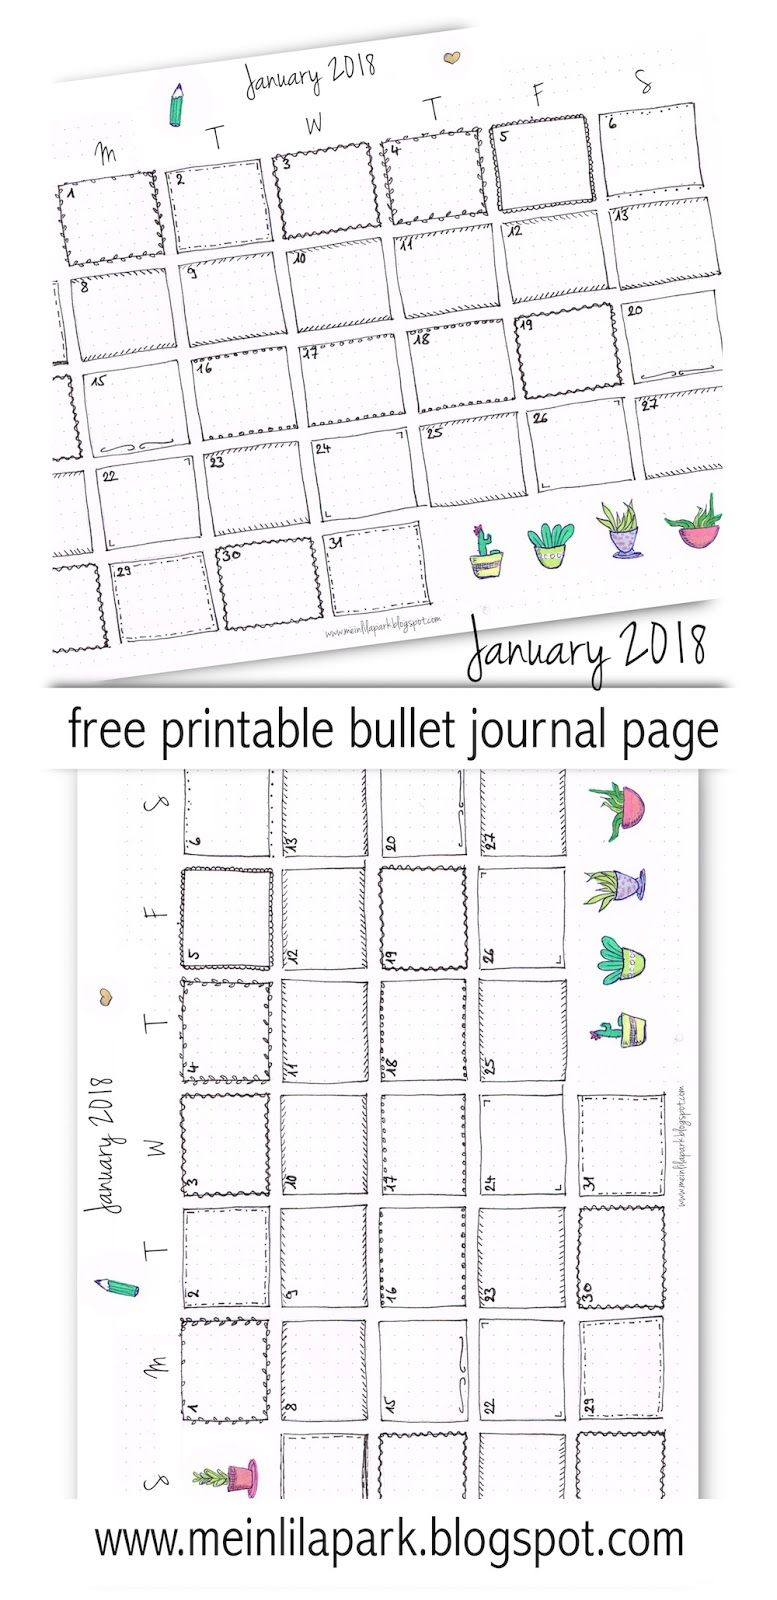 Calendar Bullet Journal 2018 : Free printable calendar page january bullet